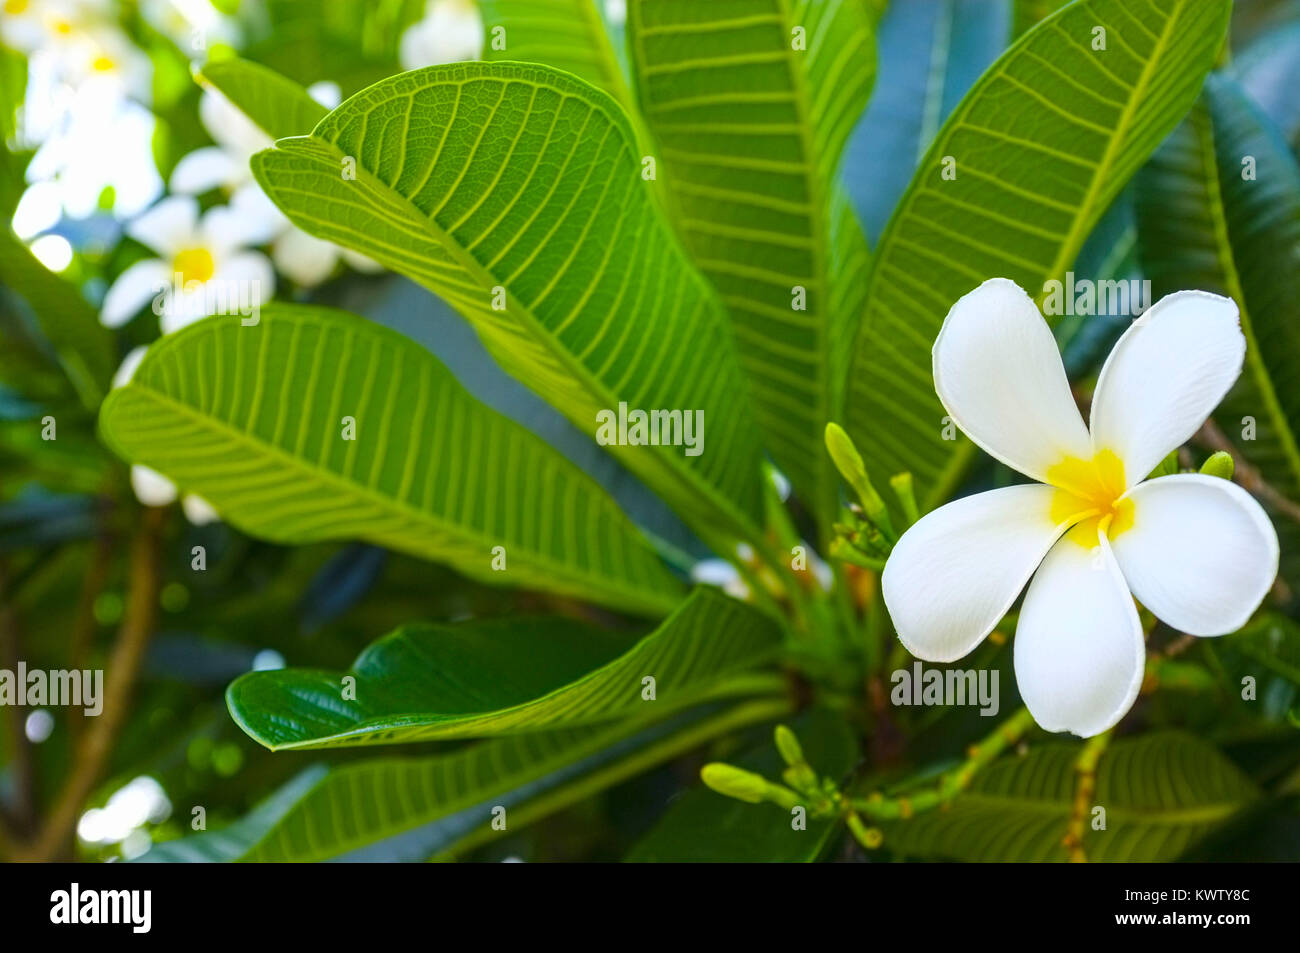 plumeria-alba-flower-on-the-tree-KWTY8C.